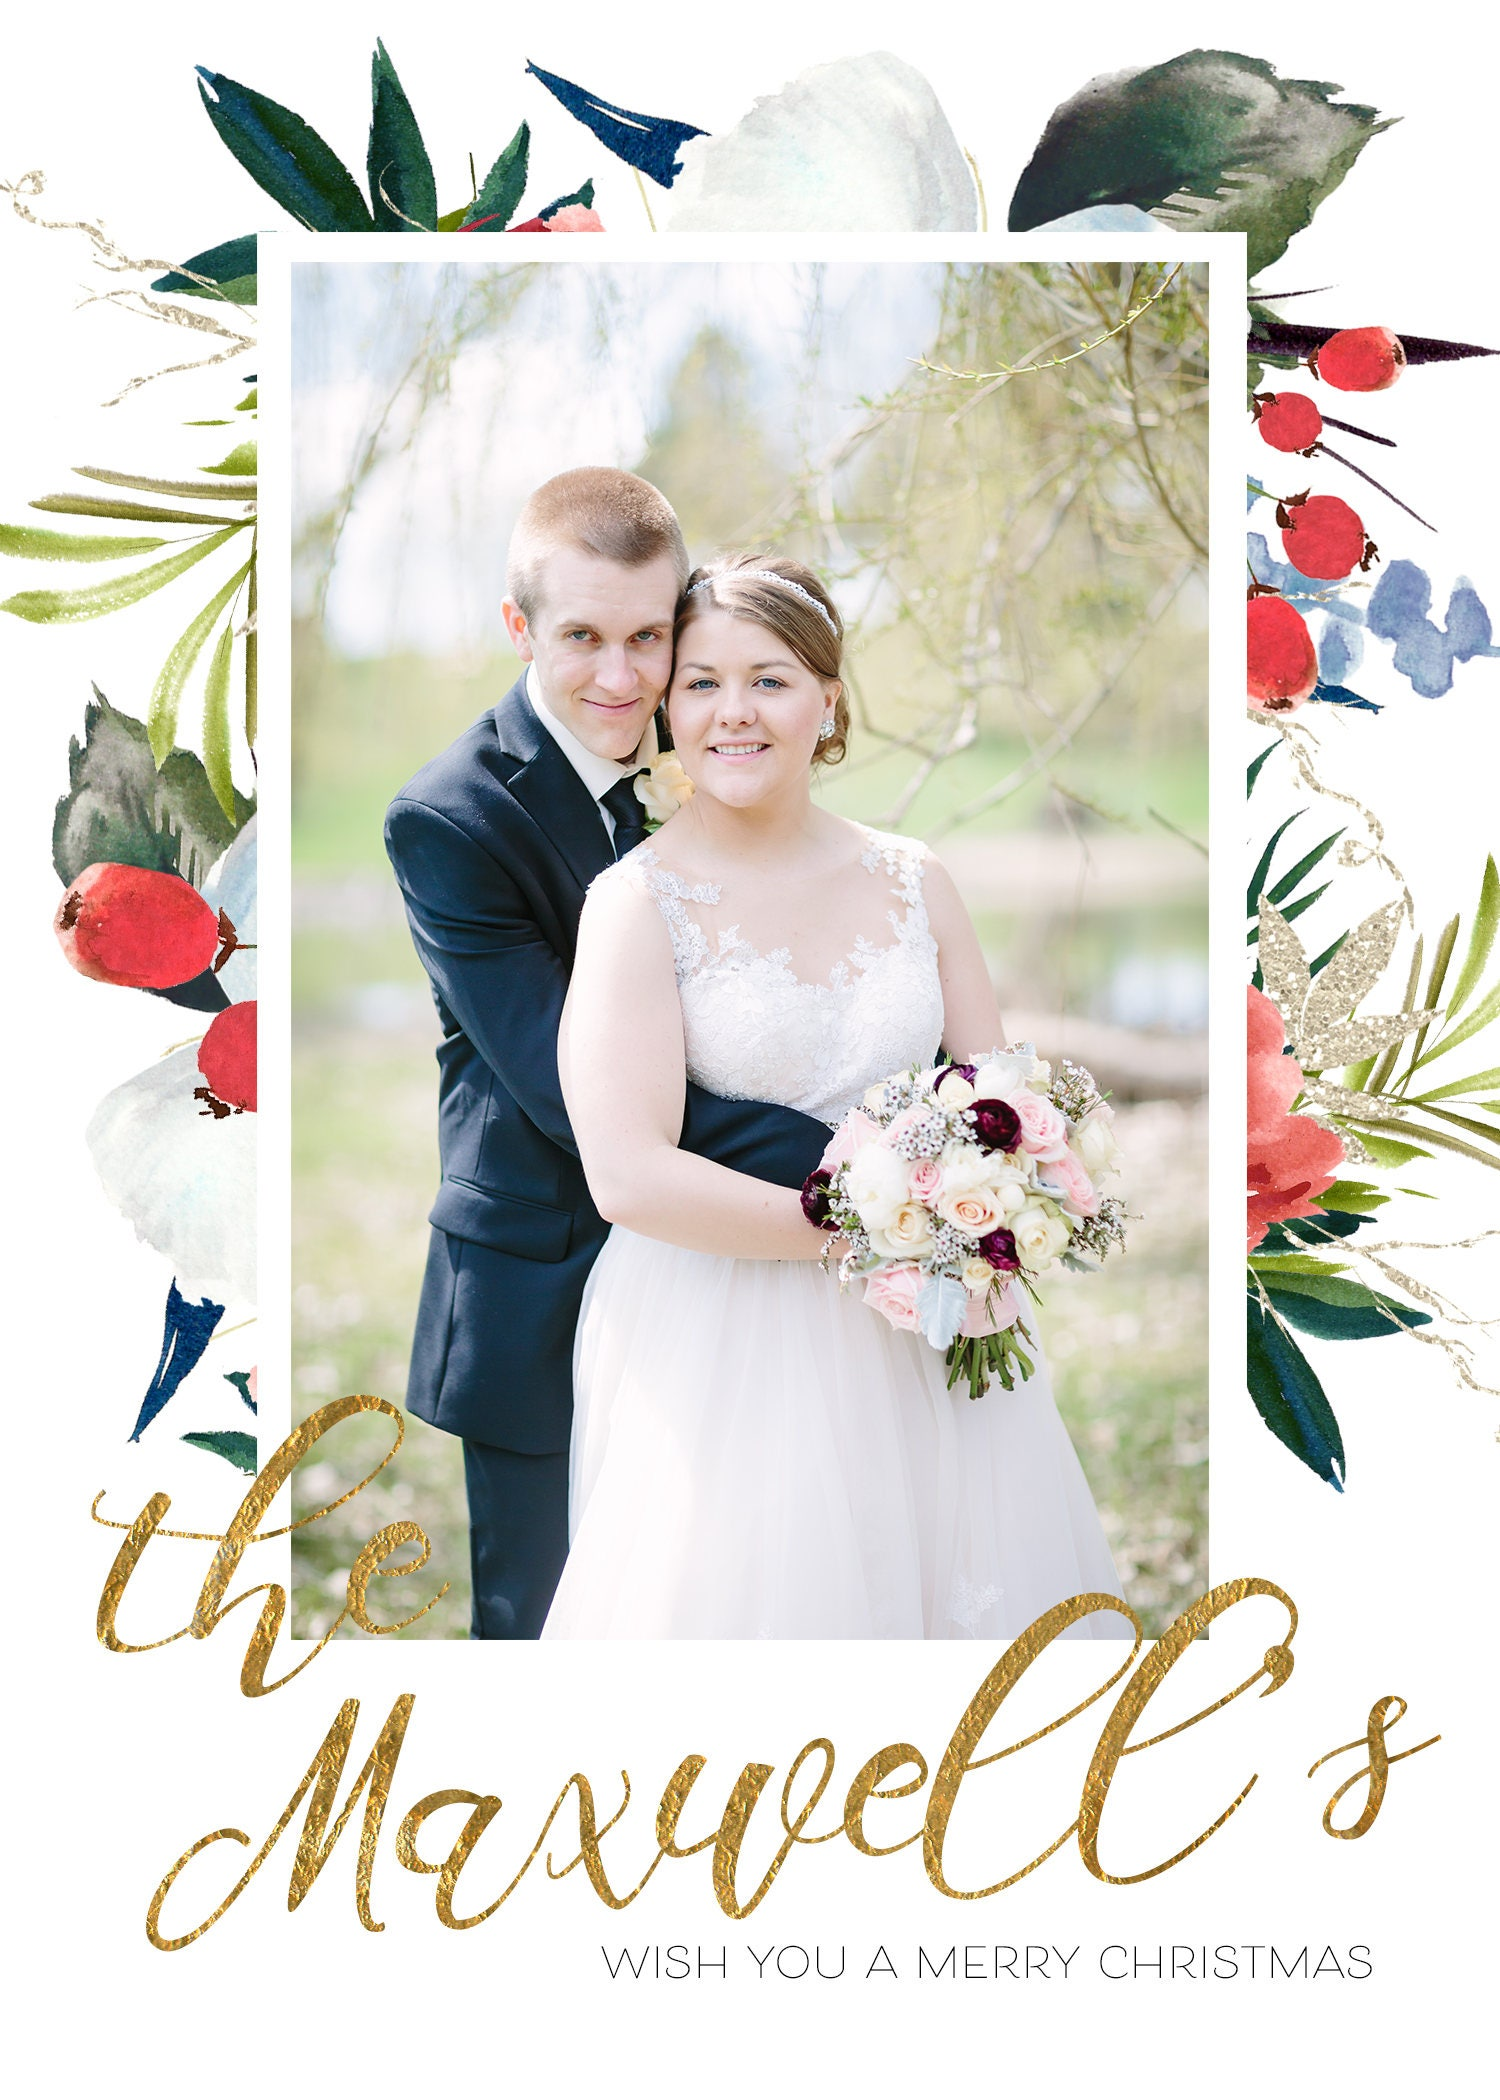 Christmas Cards for the Newlyweds ・ Just Married Christmas Cards ...